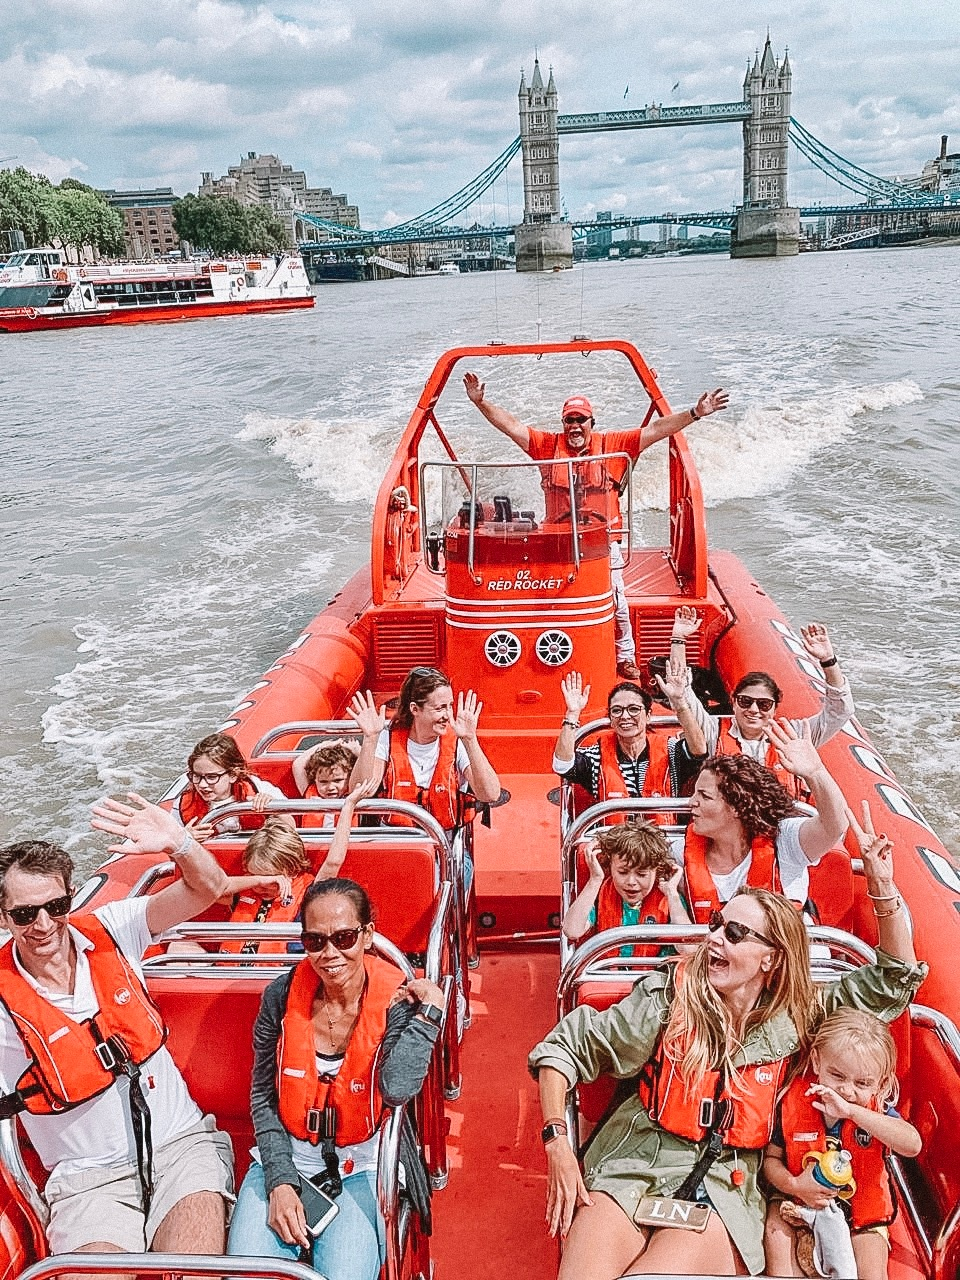 Doing London the Bond way on the child-friendly Thames Rocket